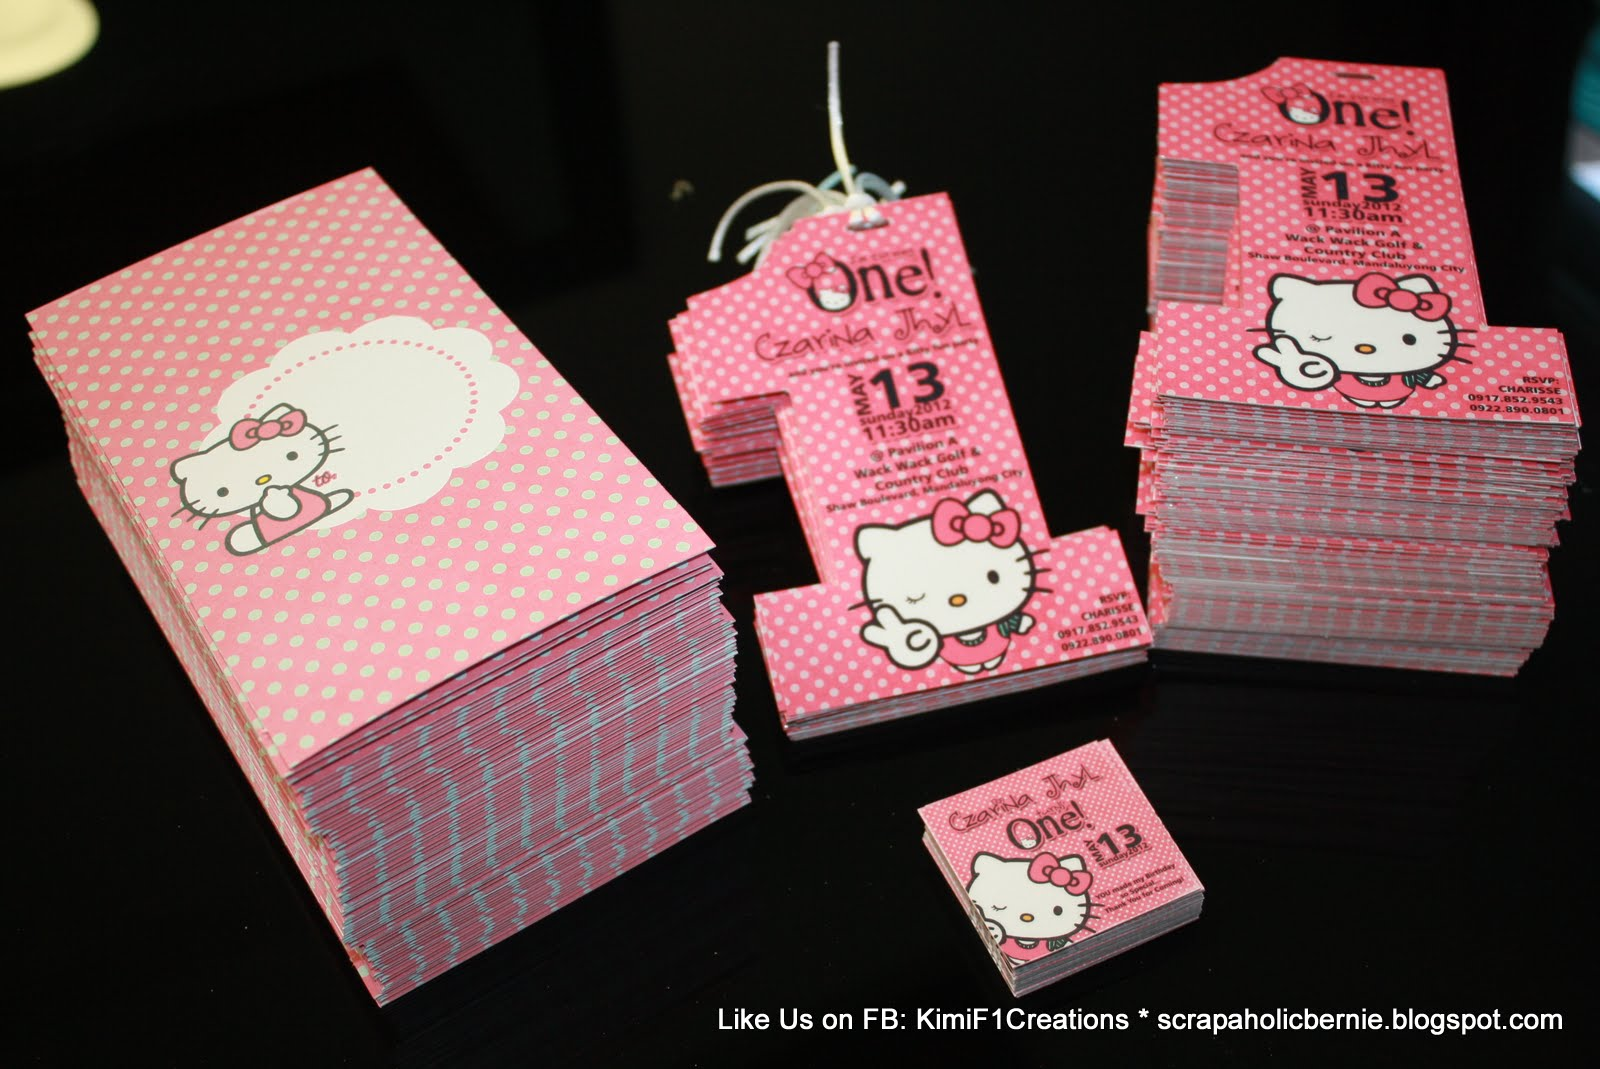 F1 digital scrapaholic hello kitty project part 2 finally200pcs of hello kitty no1 invites with envelope done solutioingenieria Images